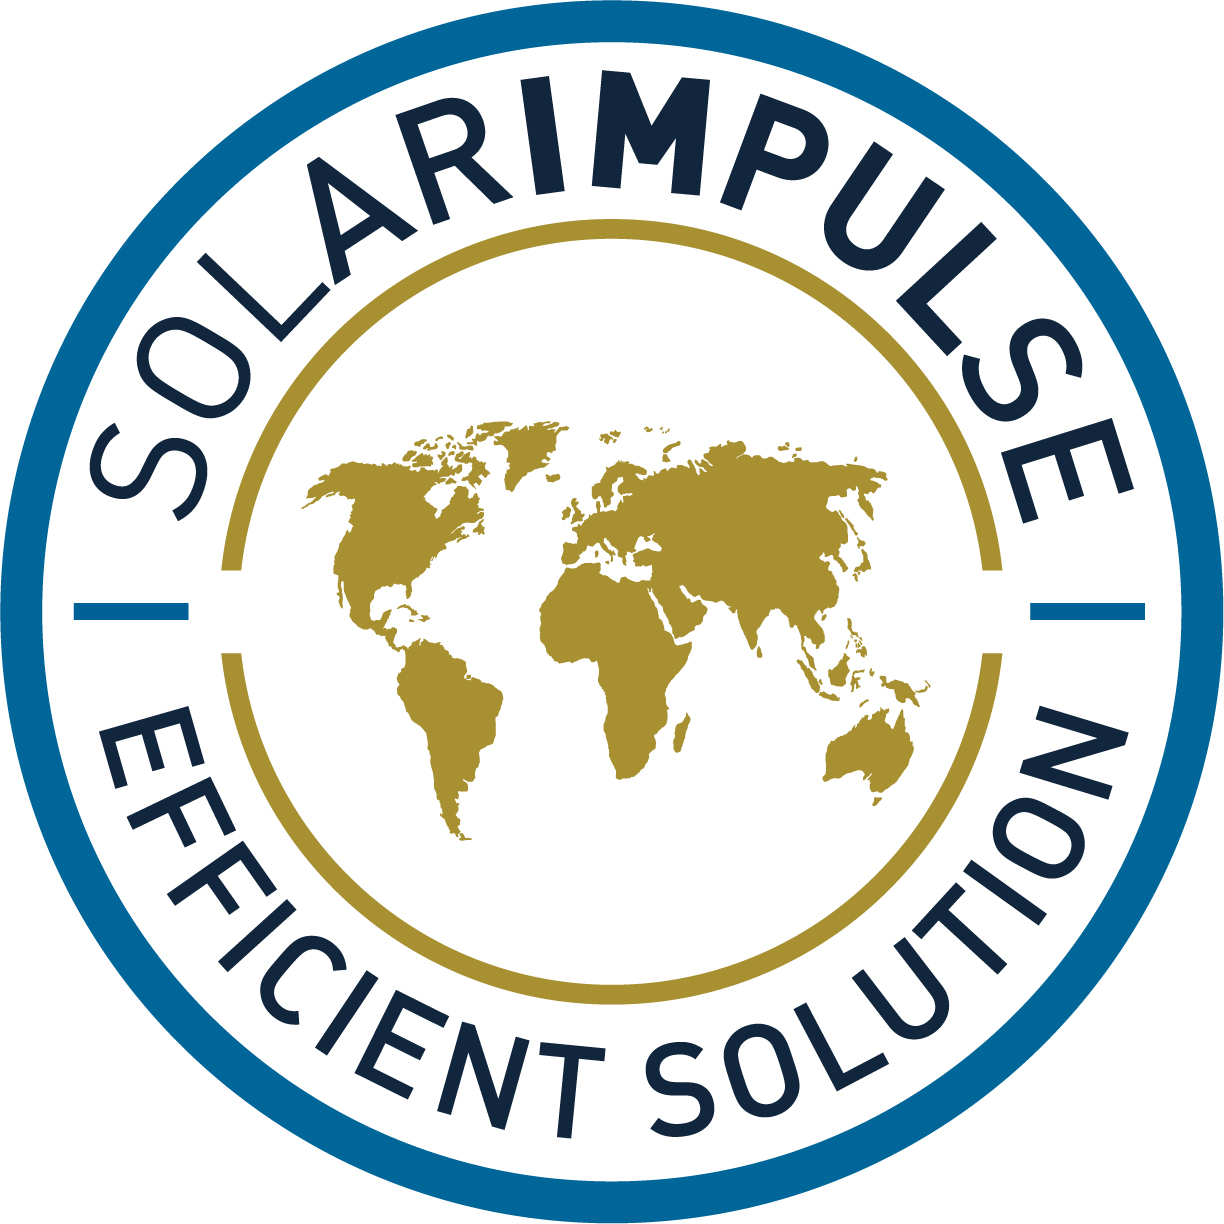 Solar impulse label